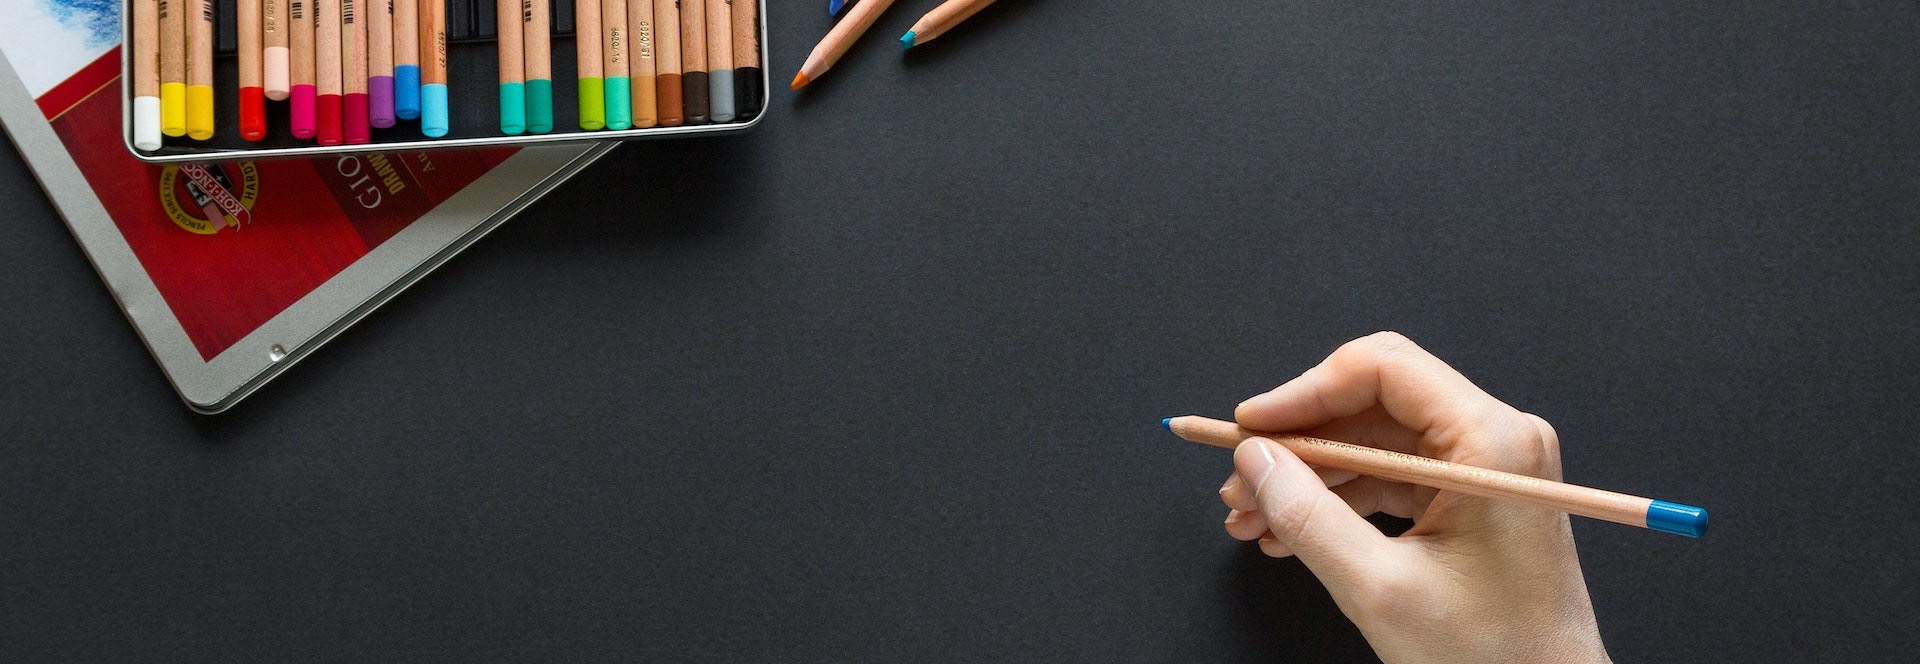 Essential Brand Identity Checklist for Small Businesses